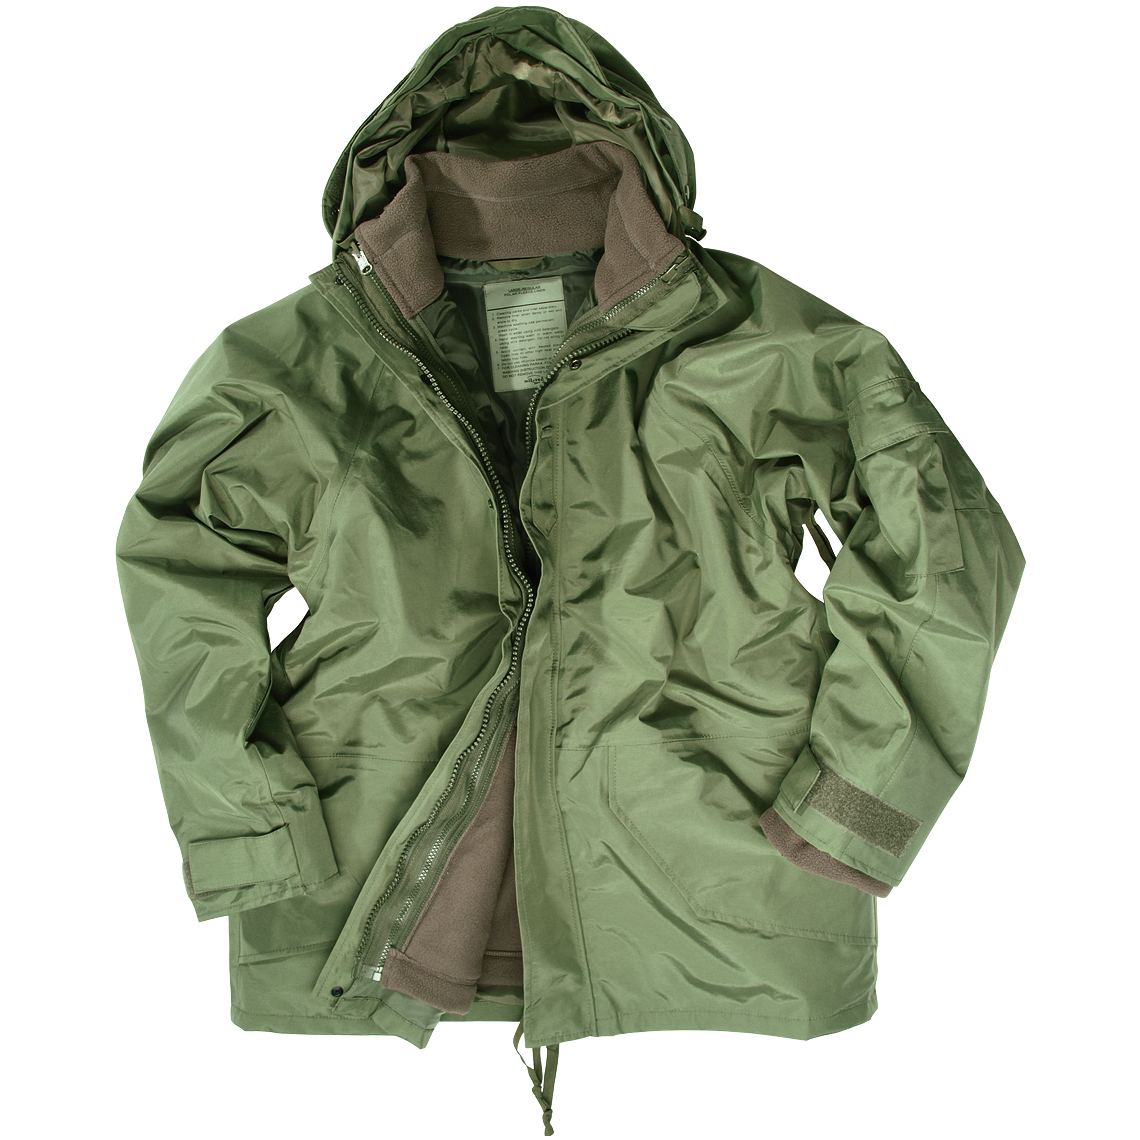 Army Waterproof Parka Military ECWCS Hooded Jacket with Fleece ...